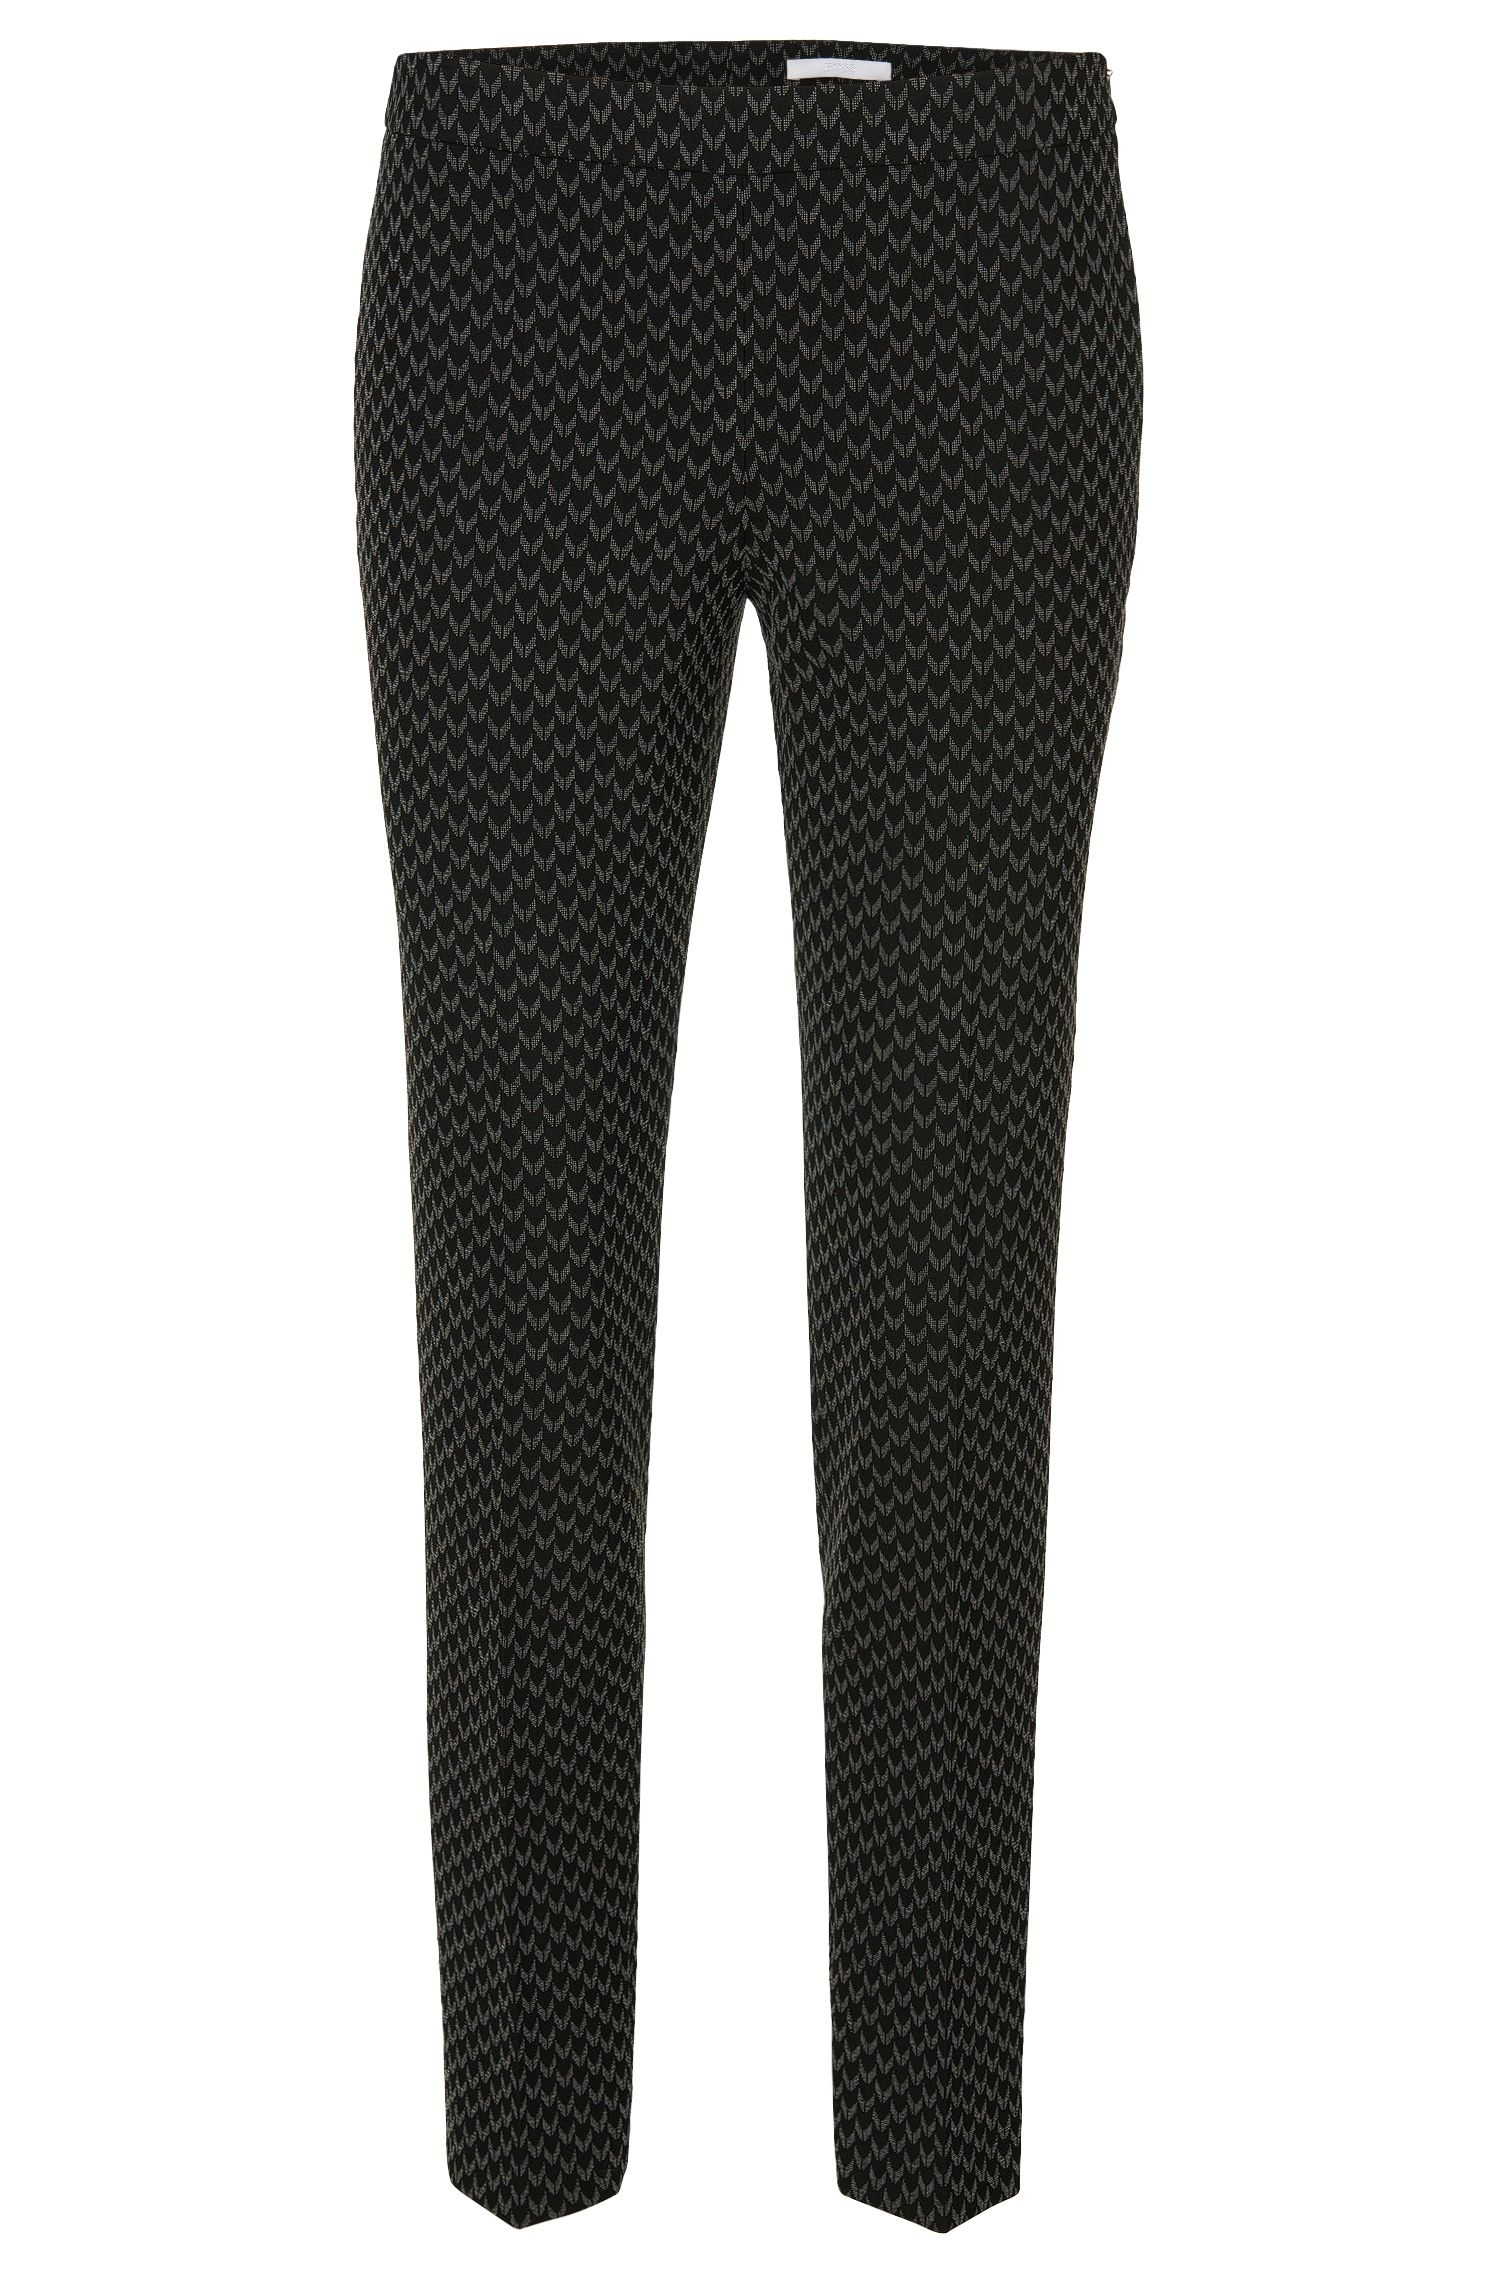 Slim-fit broek met all-over dessin: 'Tiluna_Sidezip1'